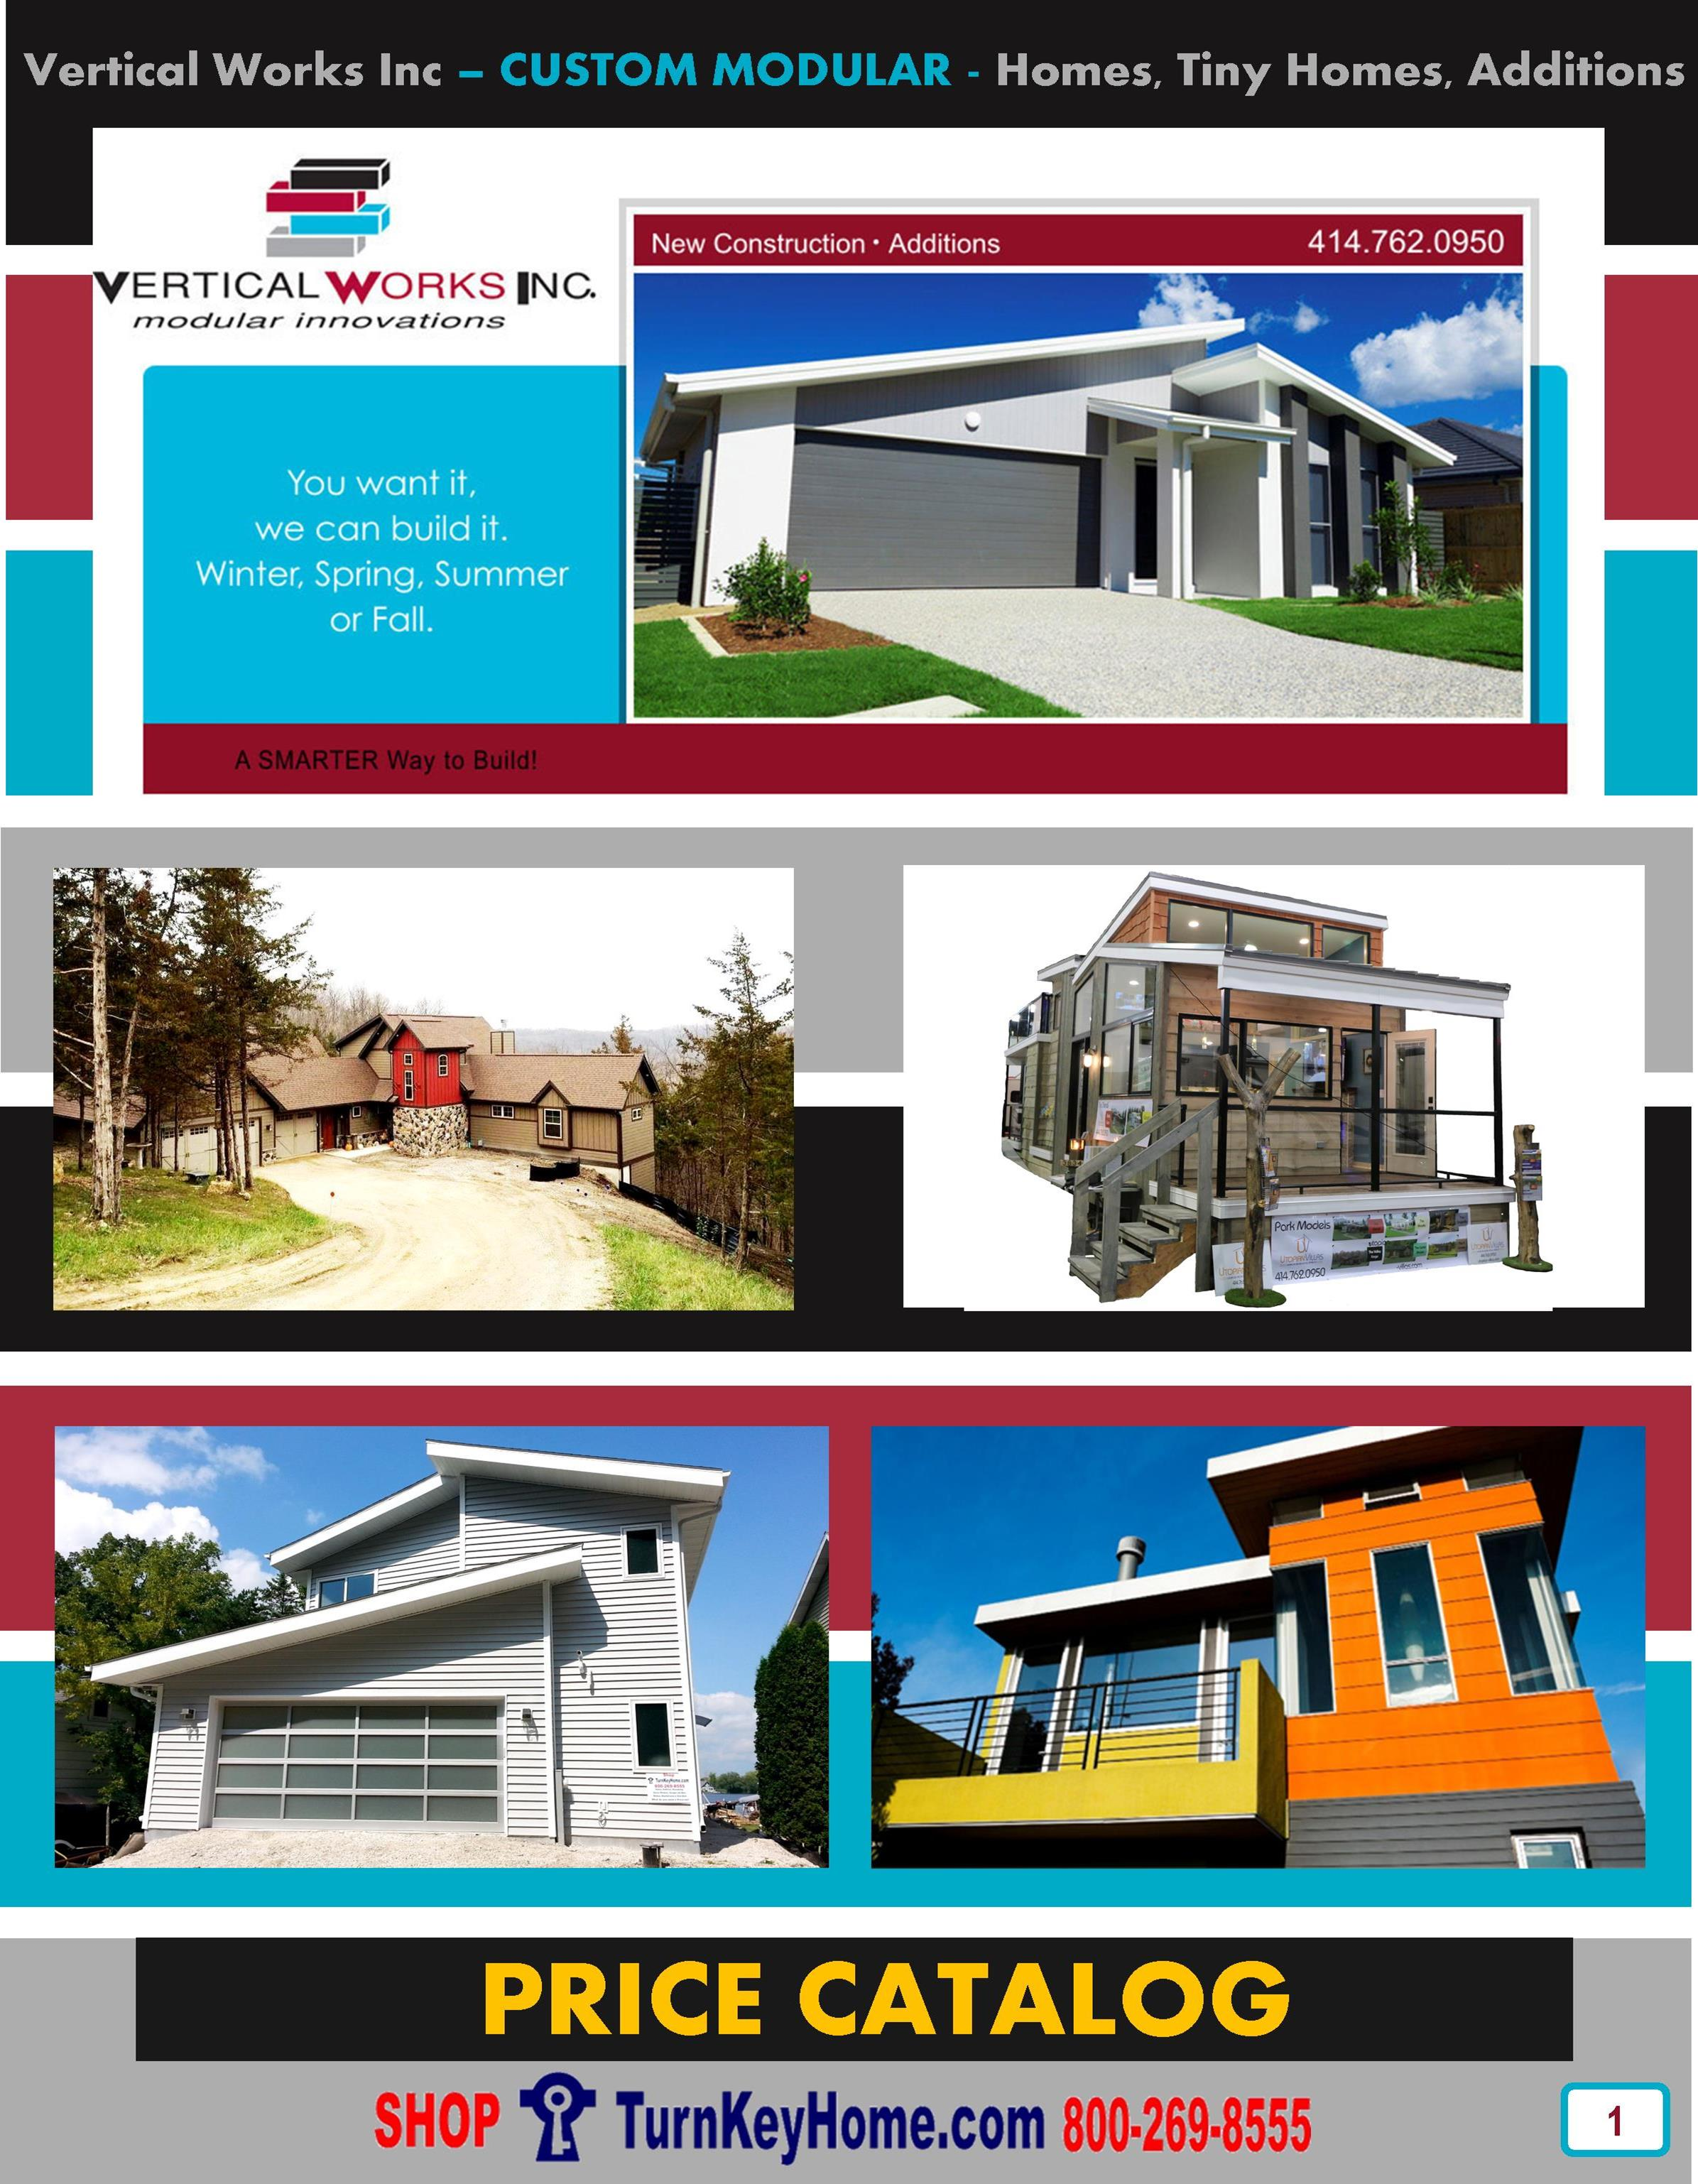 Your Plan Modular: Vertical Works Inc Custom Modular Homes, Additions, Penthouses, Tiny Homes